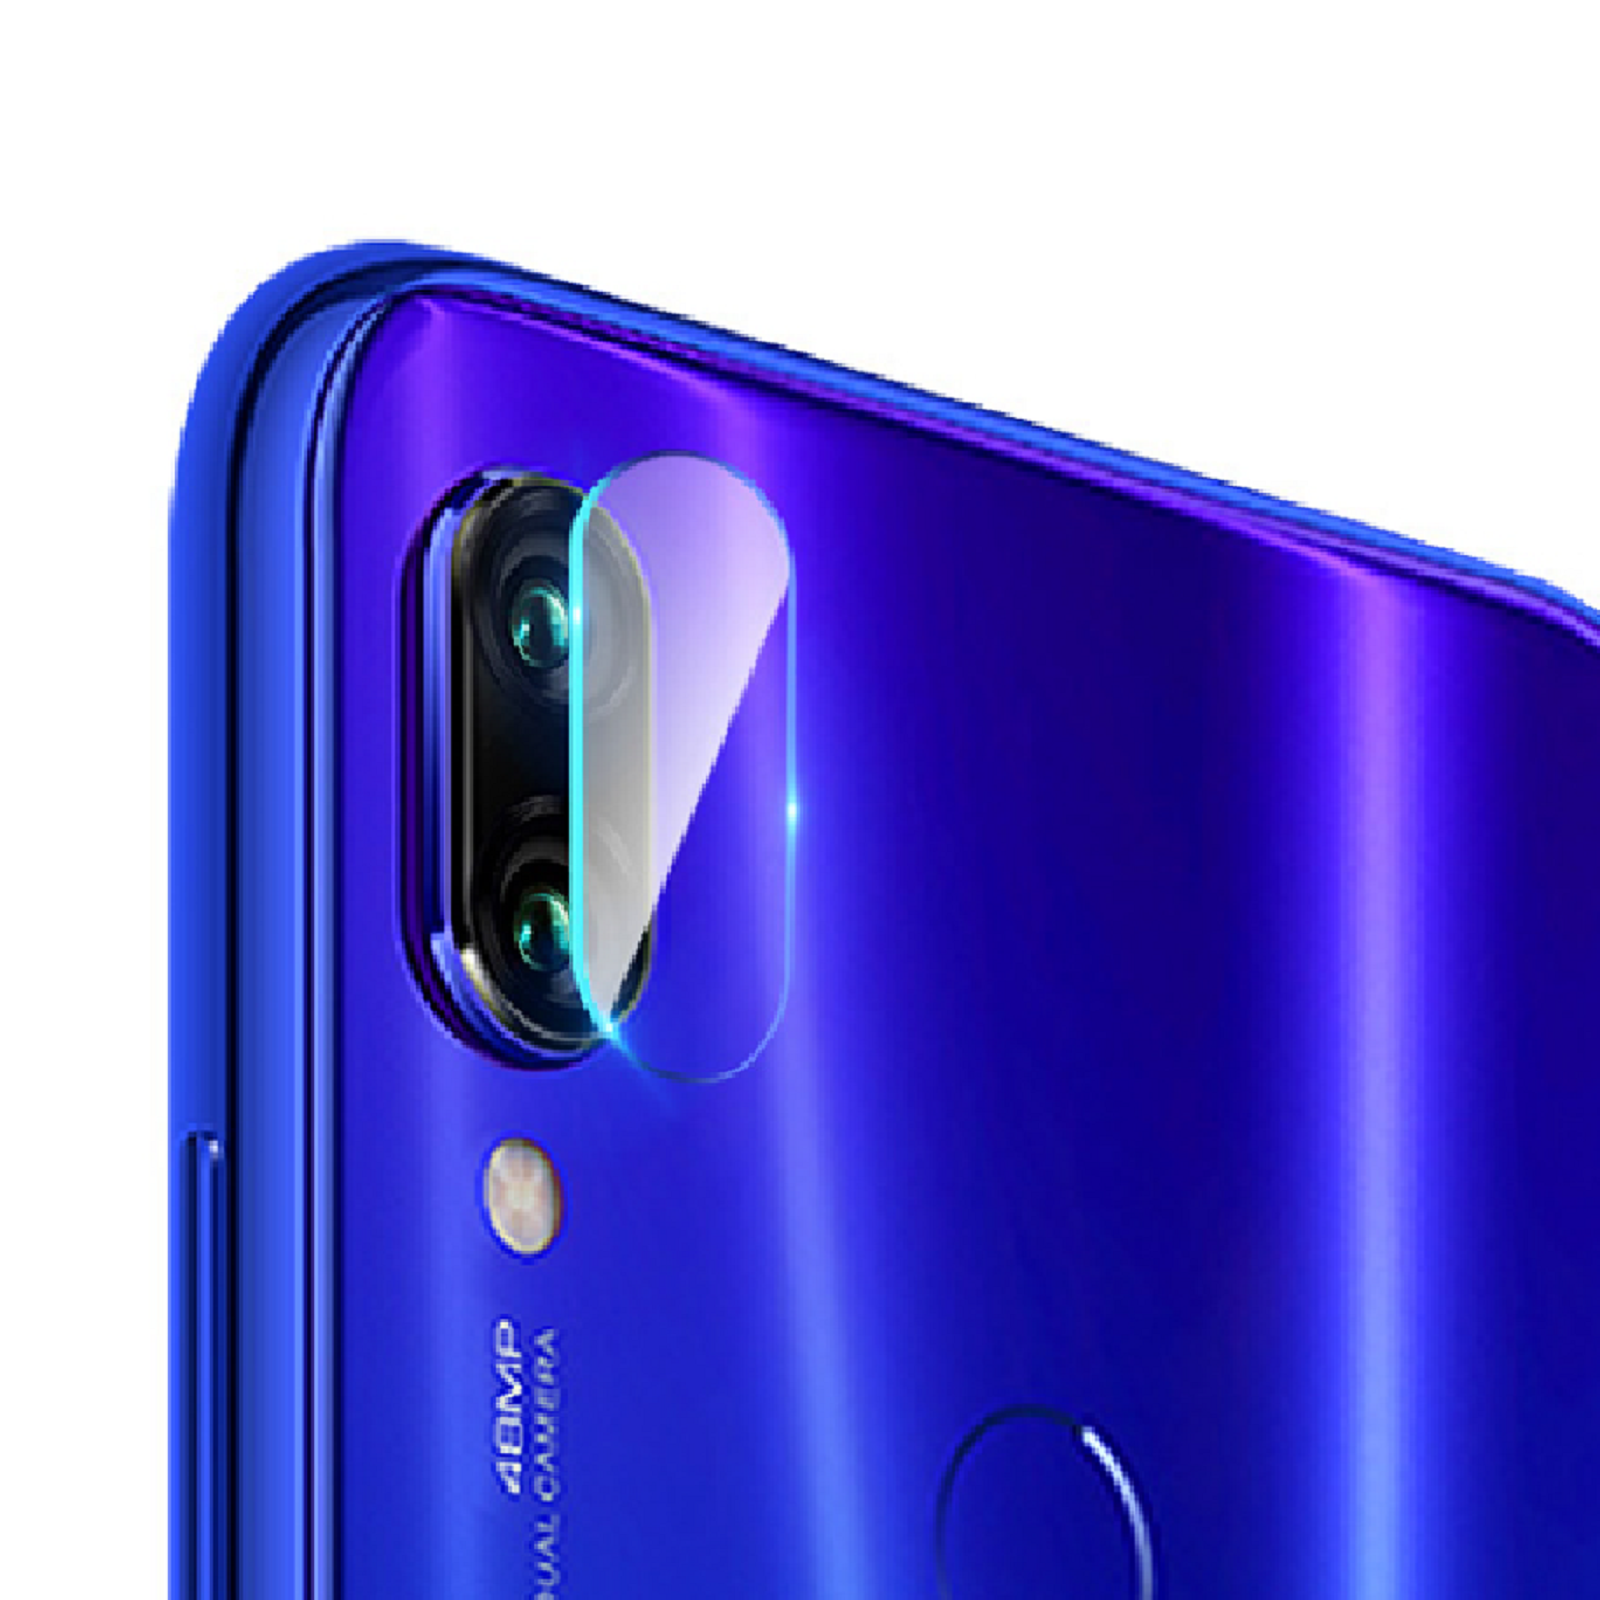 Tempered Glass <font><b>Protector</b></font> for <font><b>Xiaomi</b></font> <font><b>MI</b></font> 6X8 Camara <font><b>lens</b></font> 9 <font><b>A2</b></font> SE Lite MI6X MI8 MI9 image